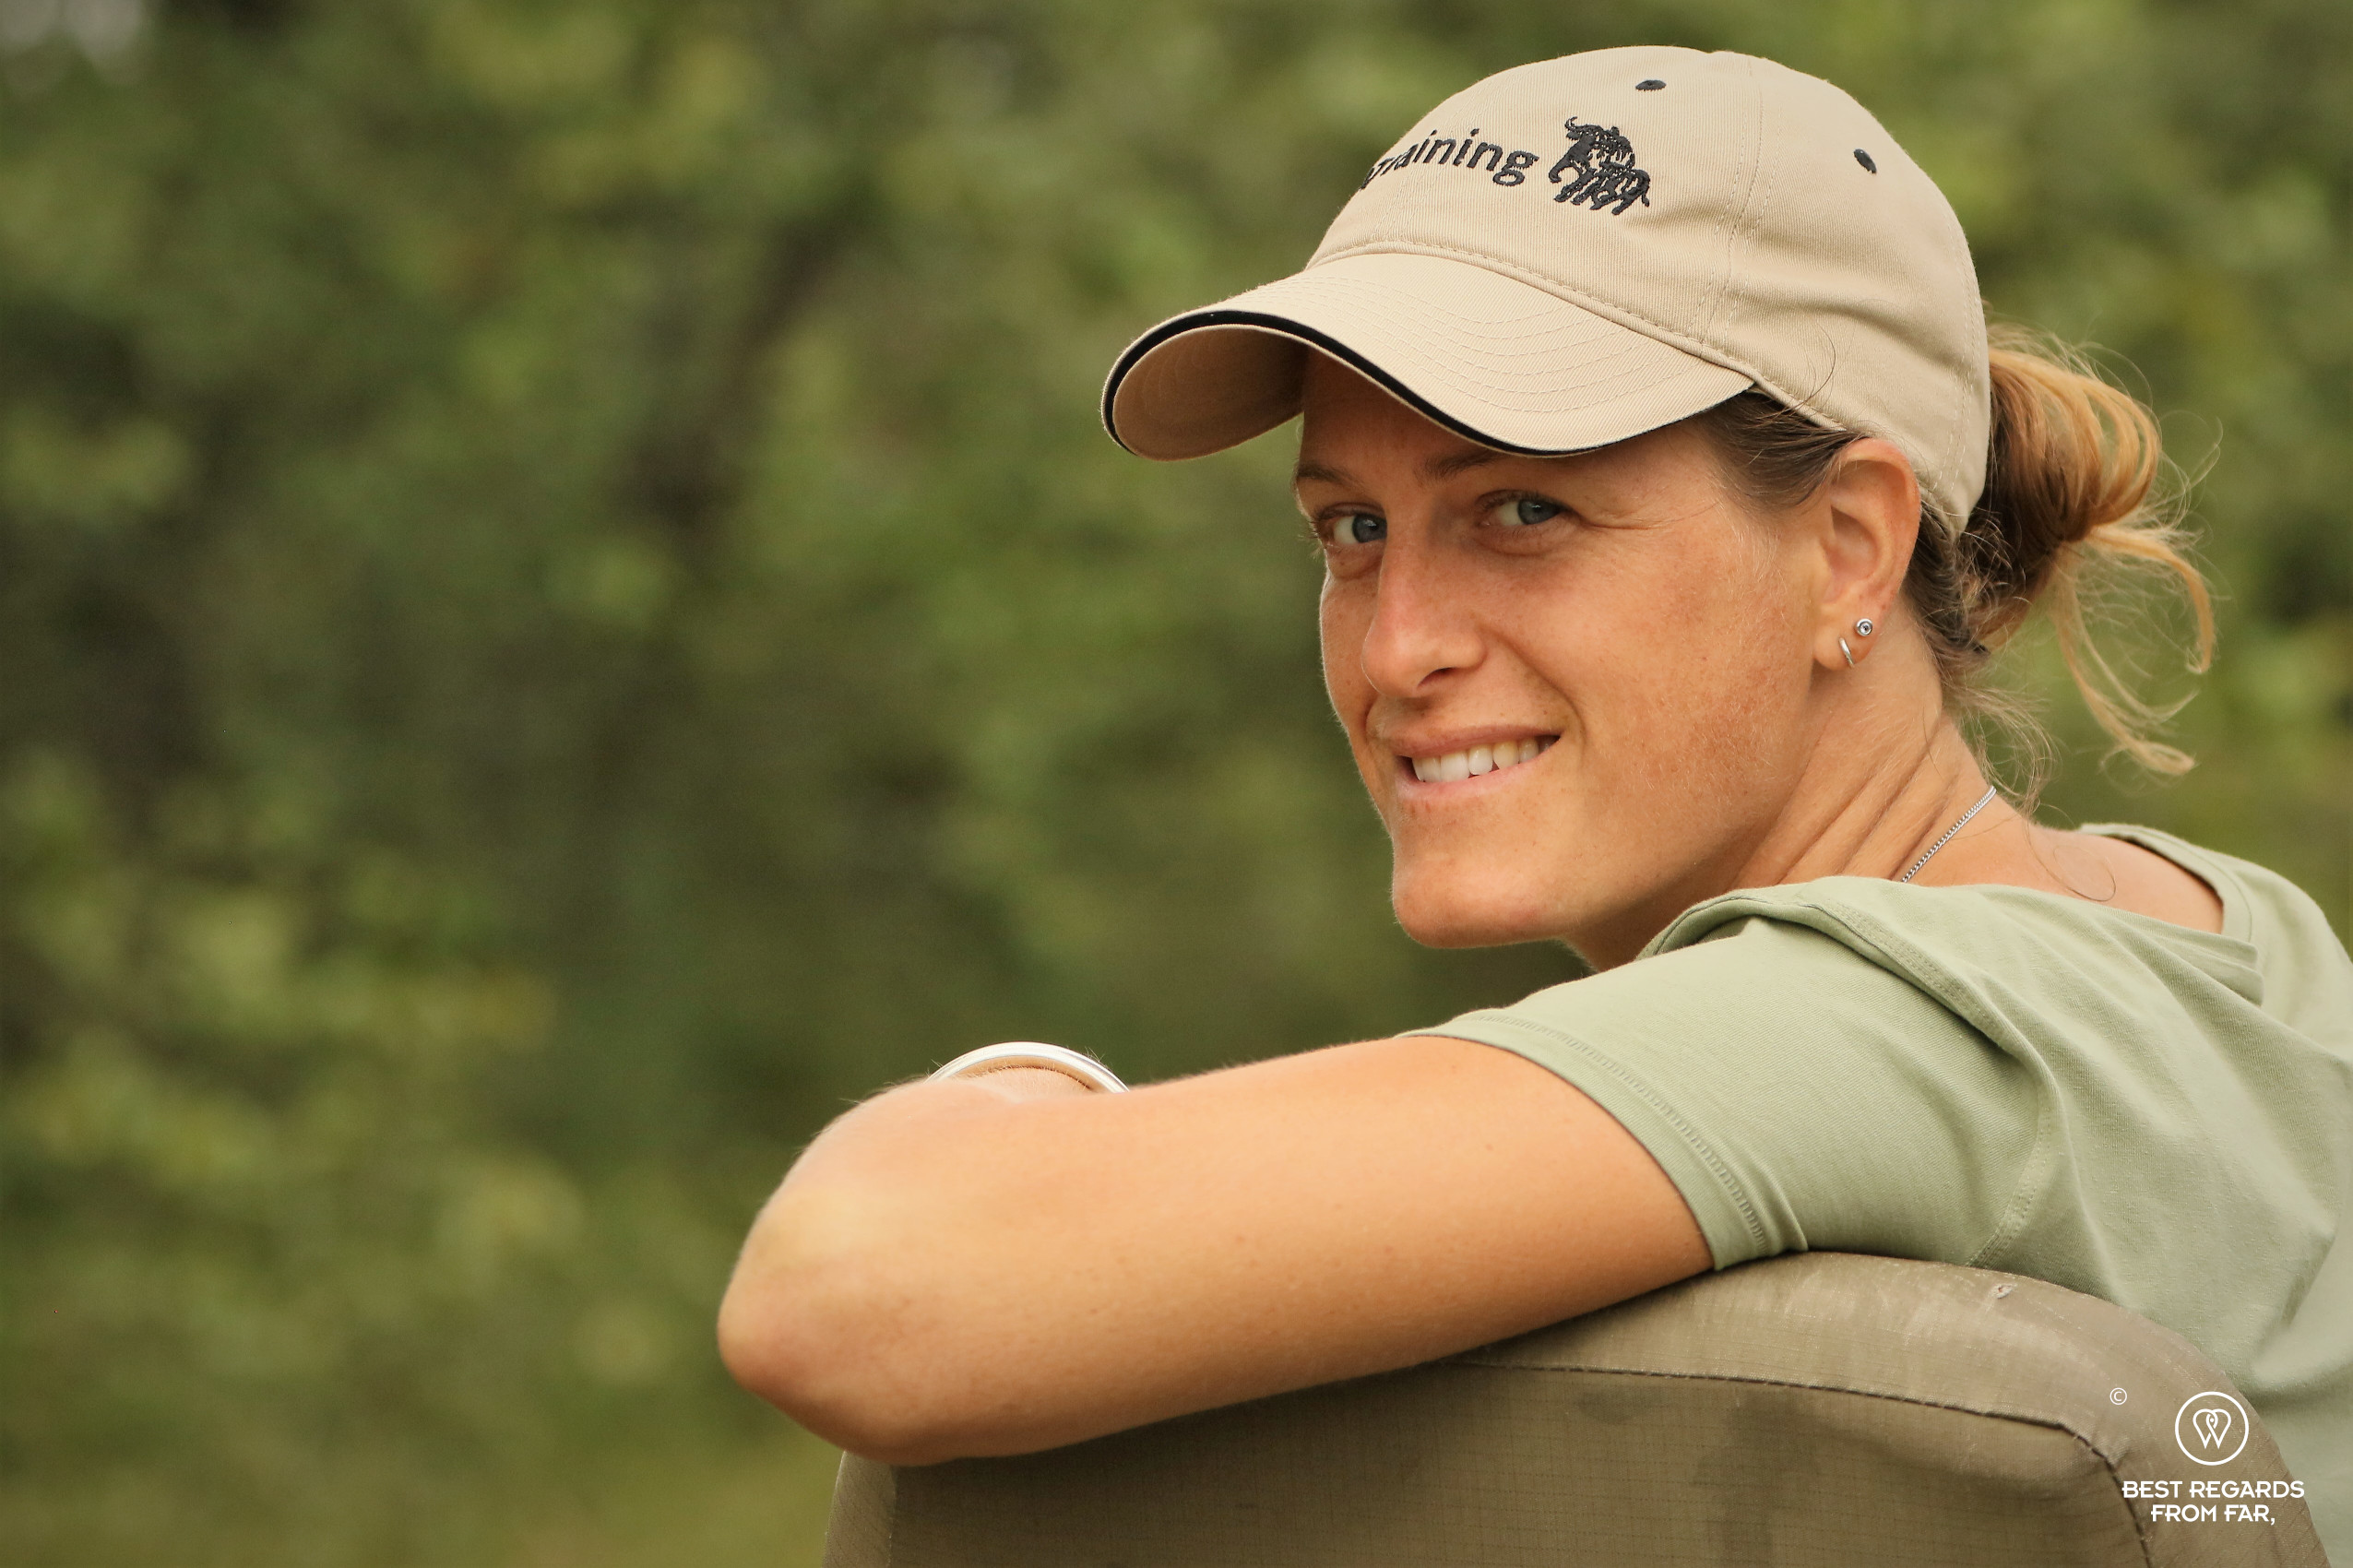 Photographer Marcella van Alphen with an EcoTraining cap looking at the viewer from the tracker seat